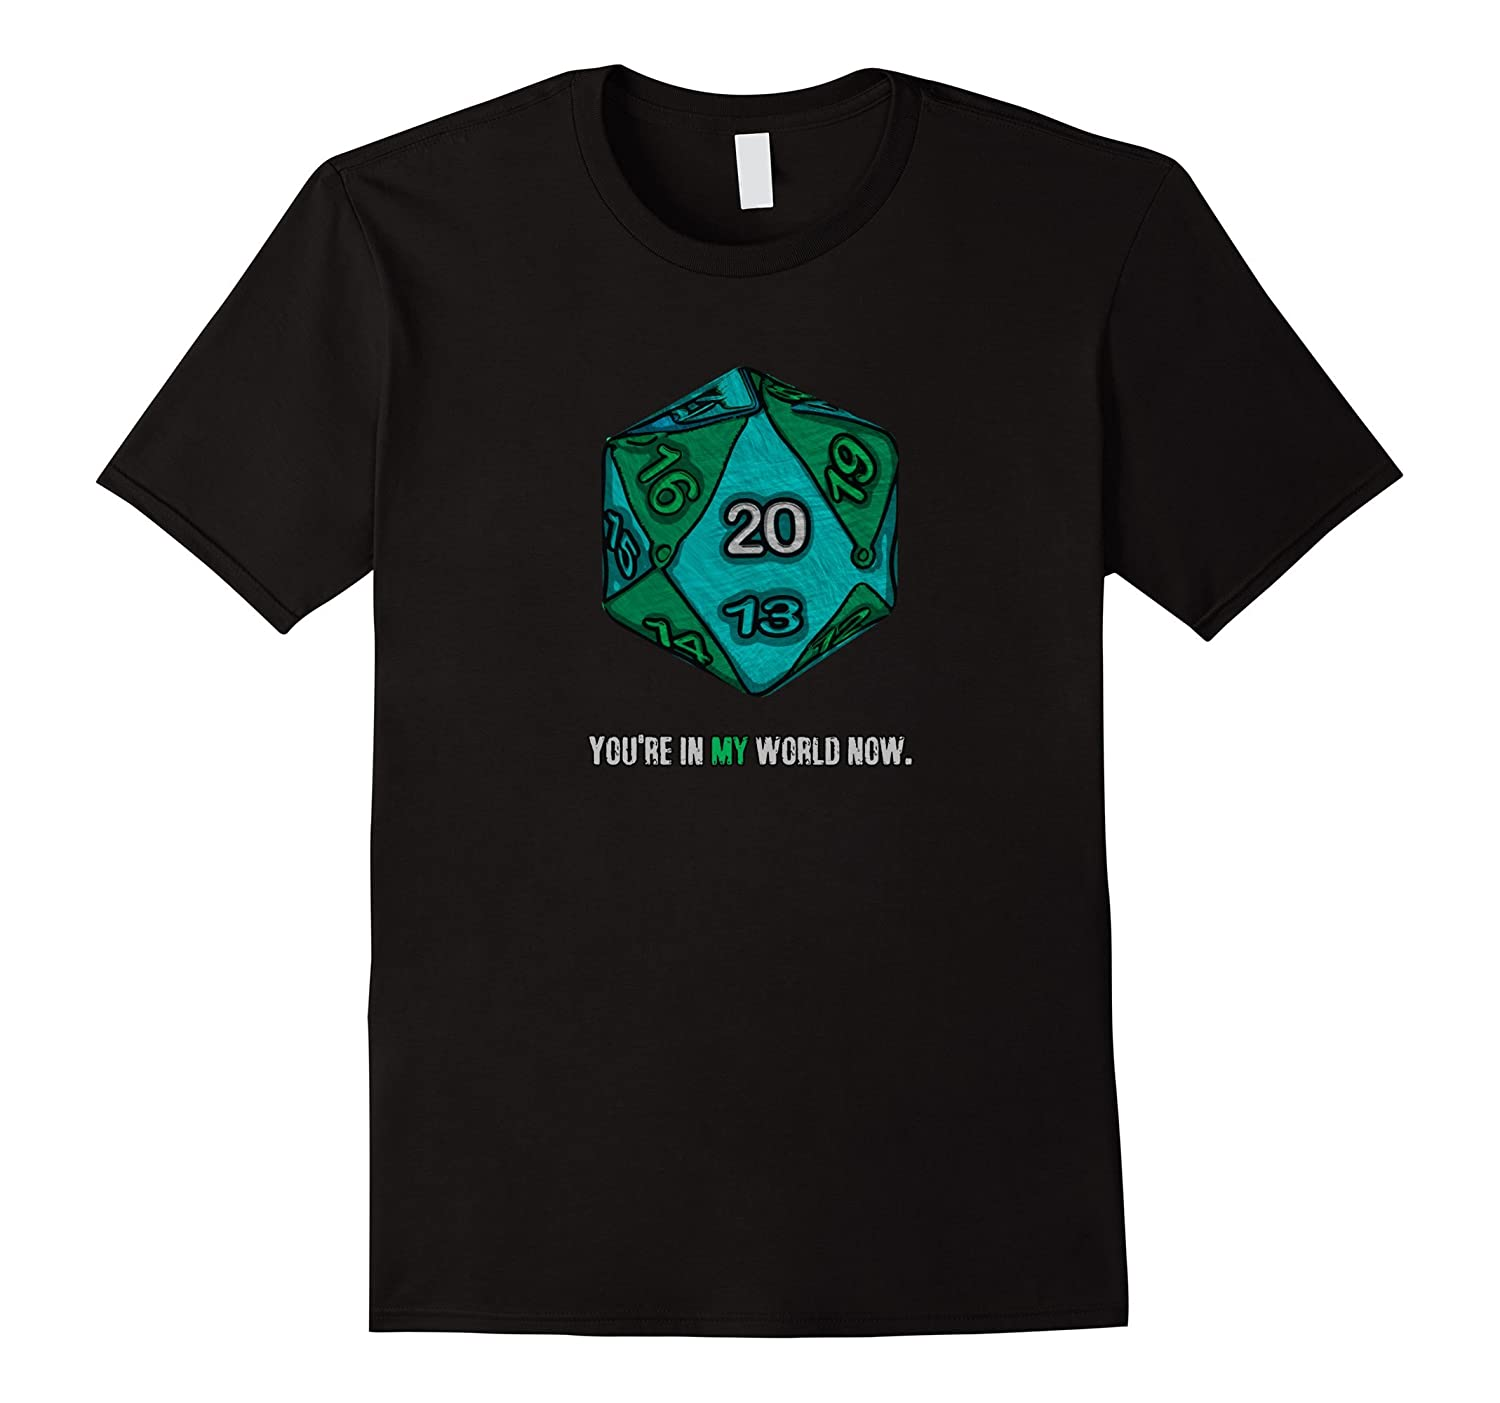 You're In MY World Now RPG shirt tabletop 20-die-TH